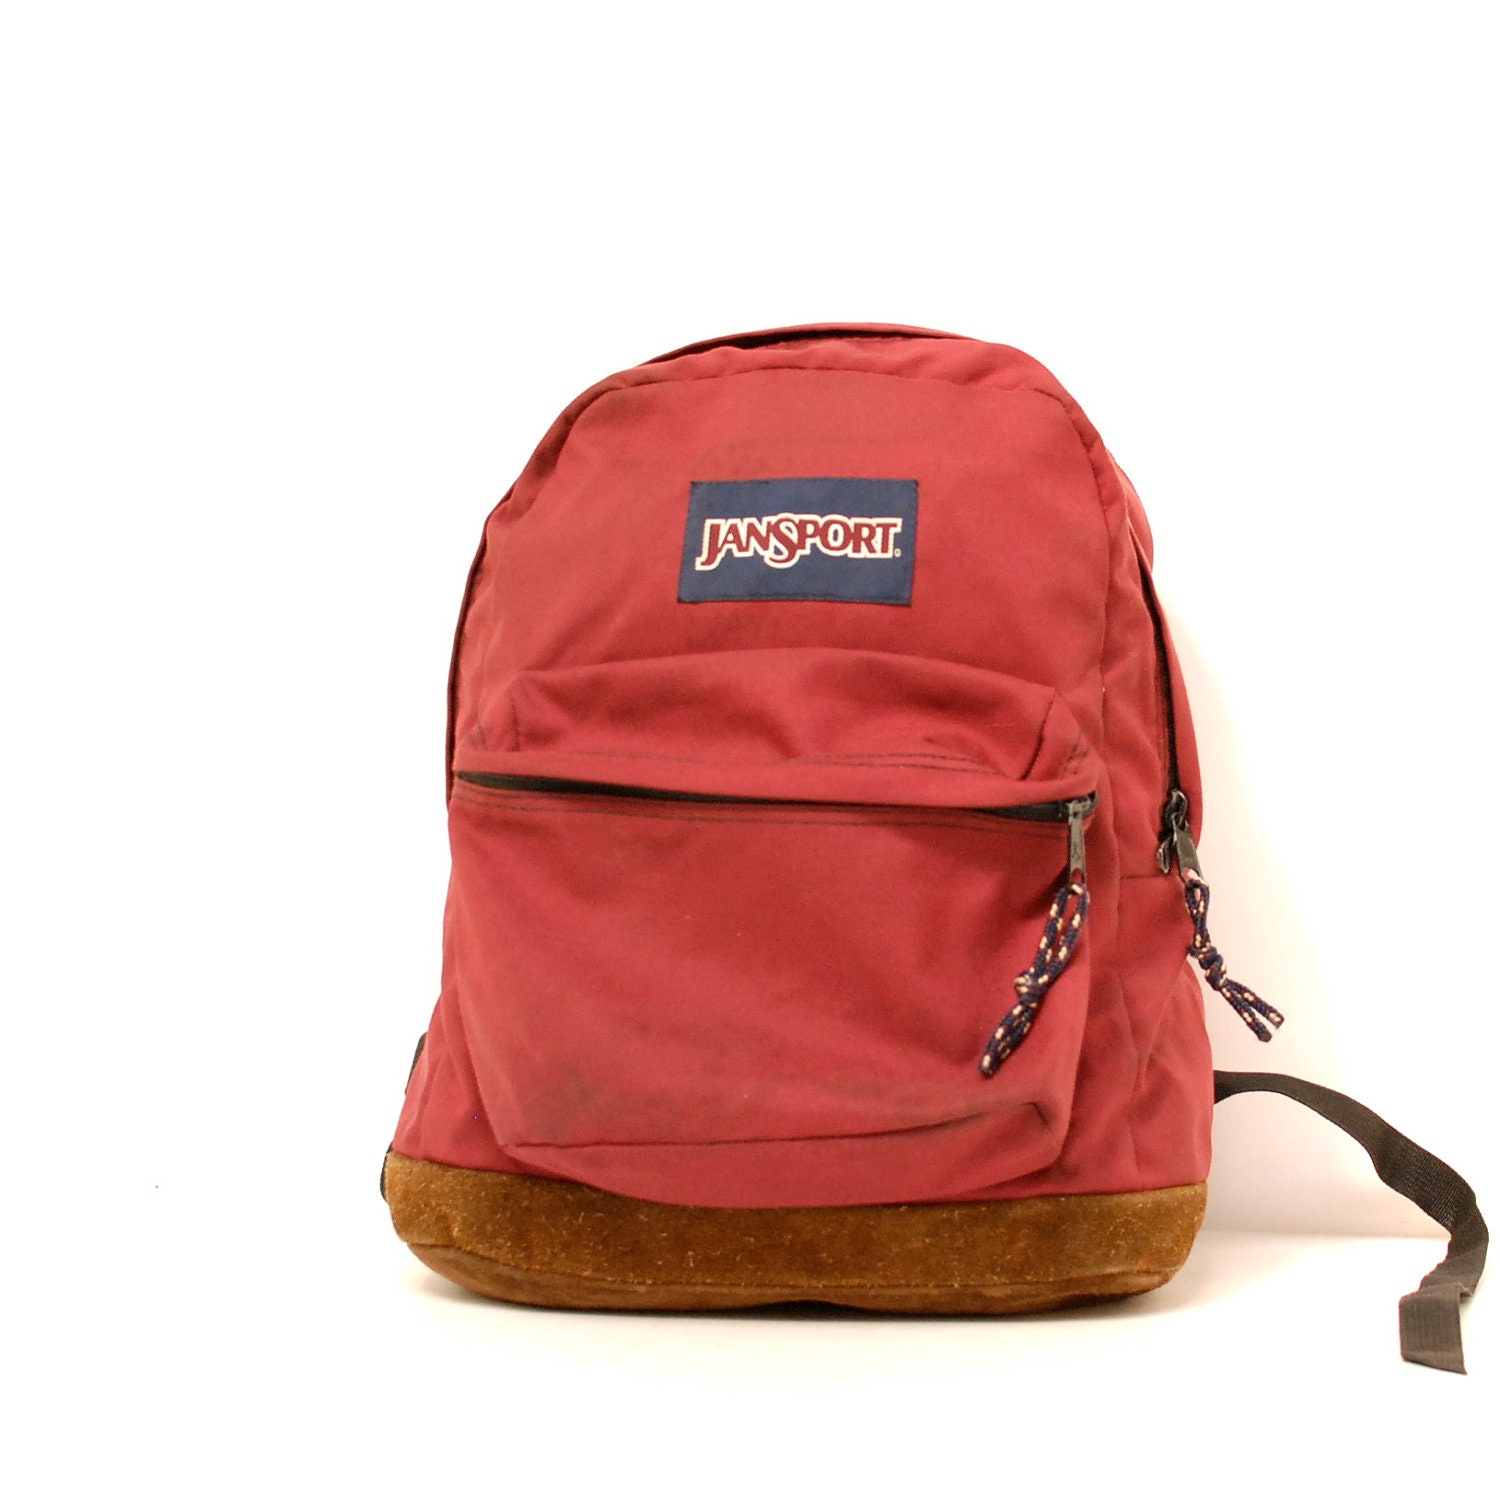 Jansport Backpack Red - Crazy Backpacks